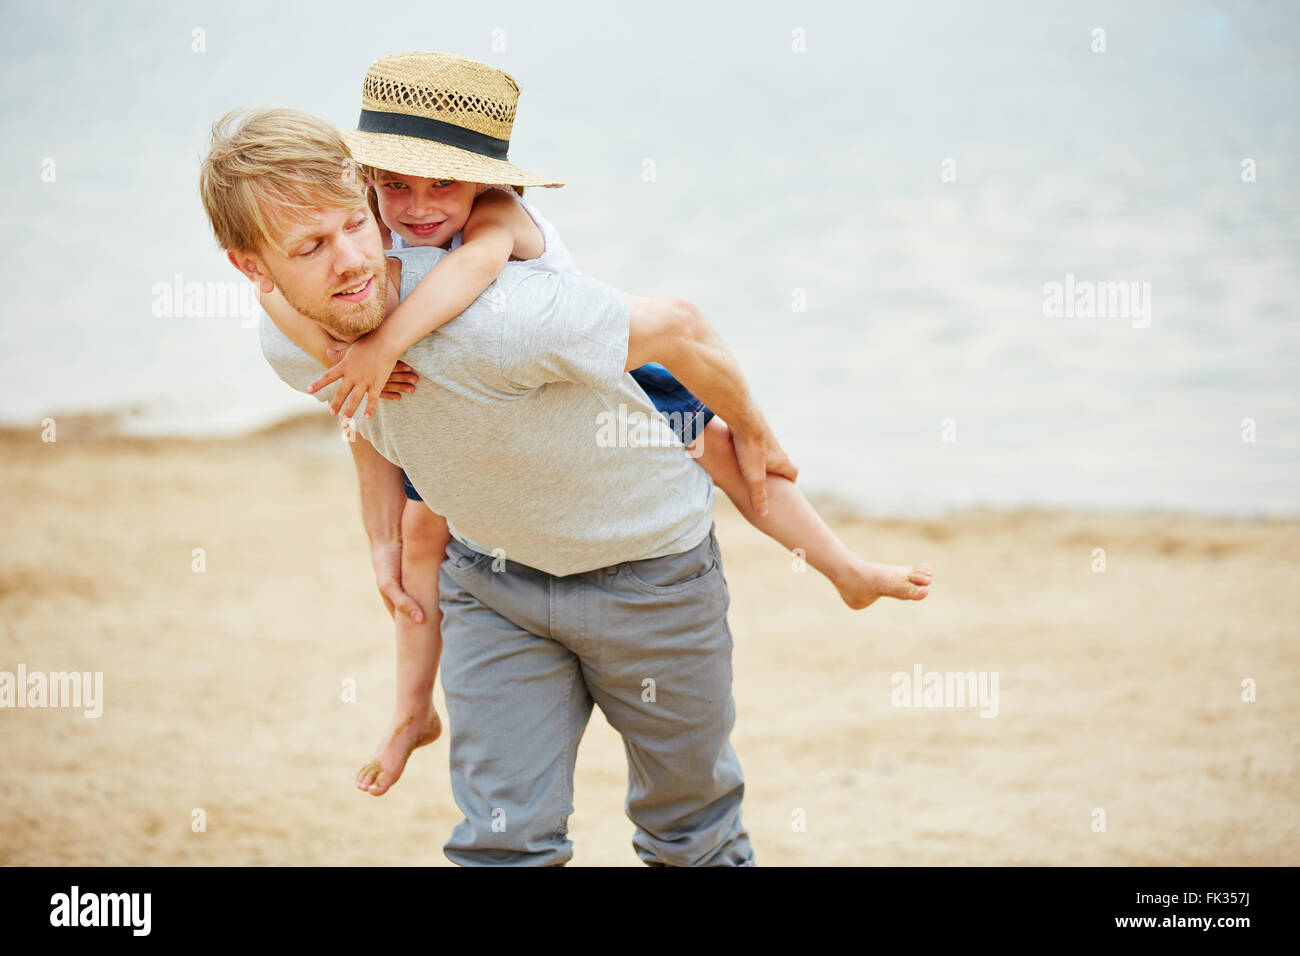 Man carrying girl piggyback sur le dos sur une plage en été Photo Stock